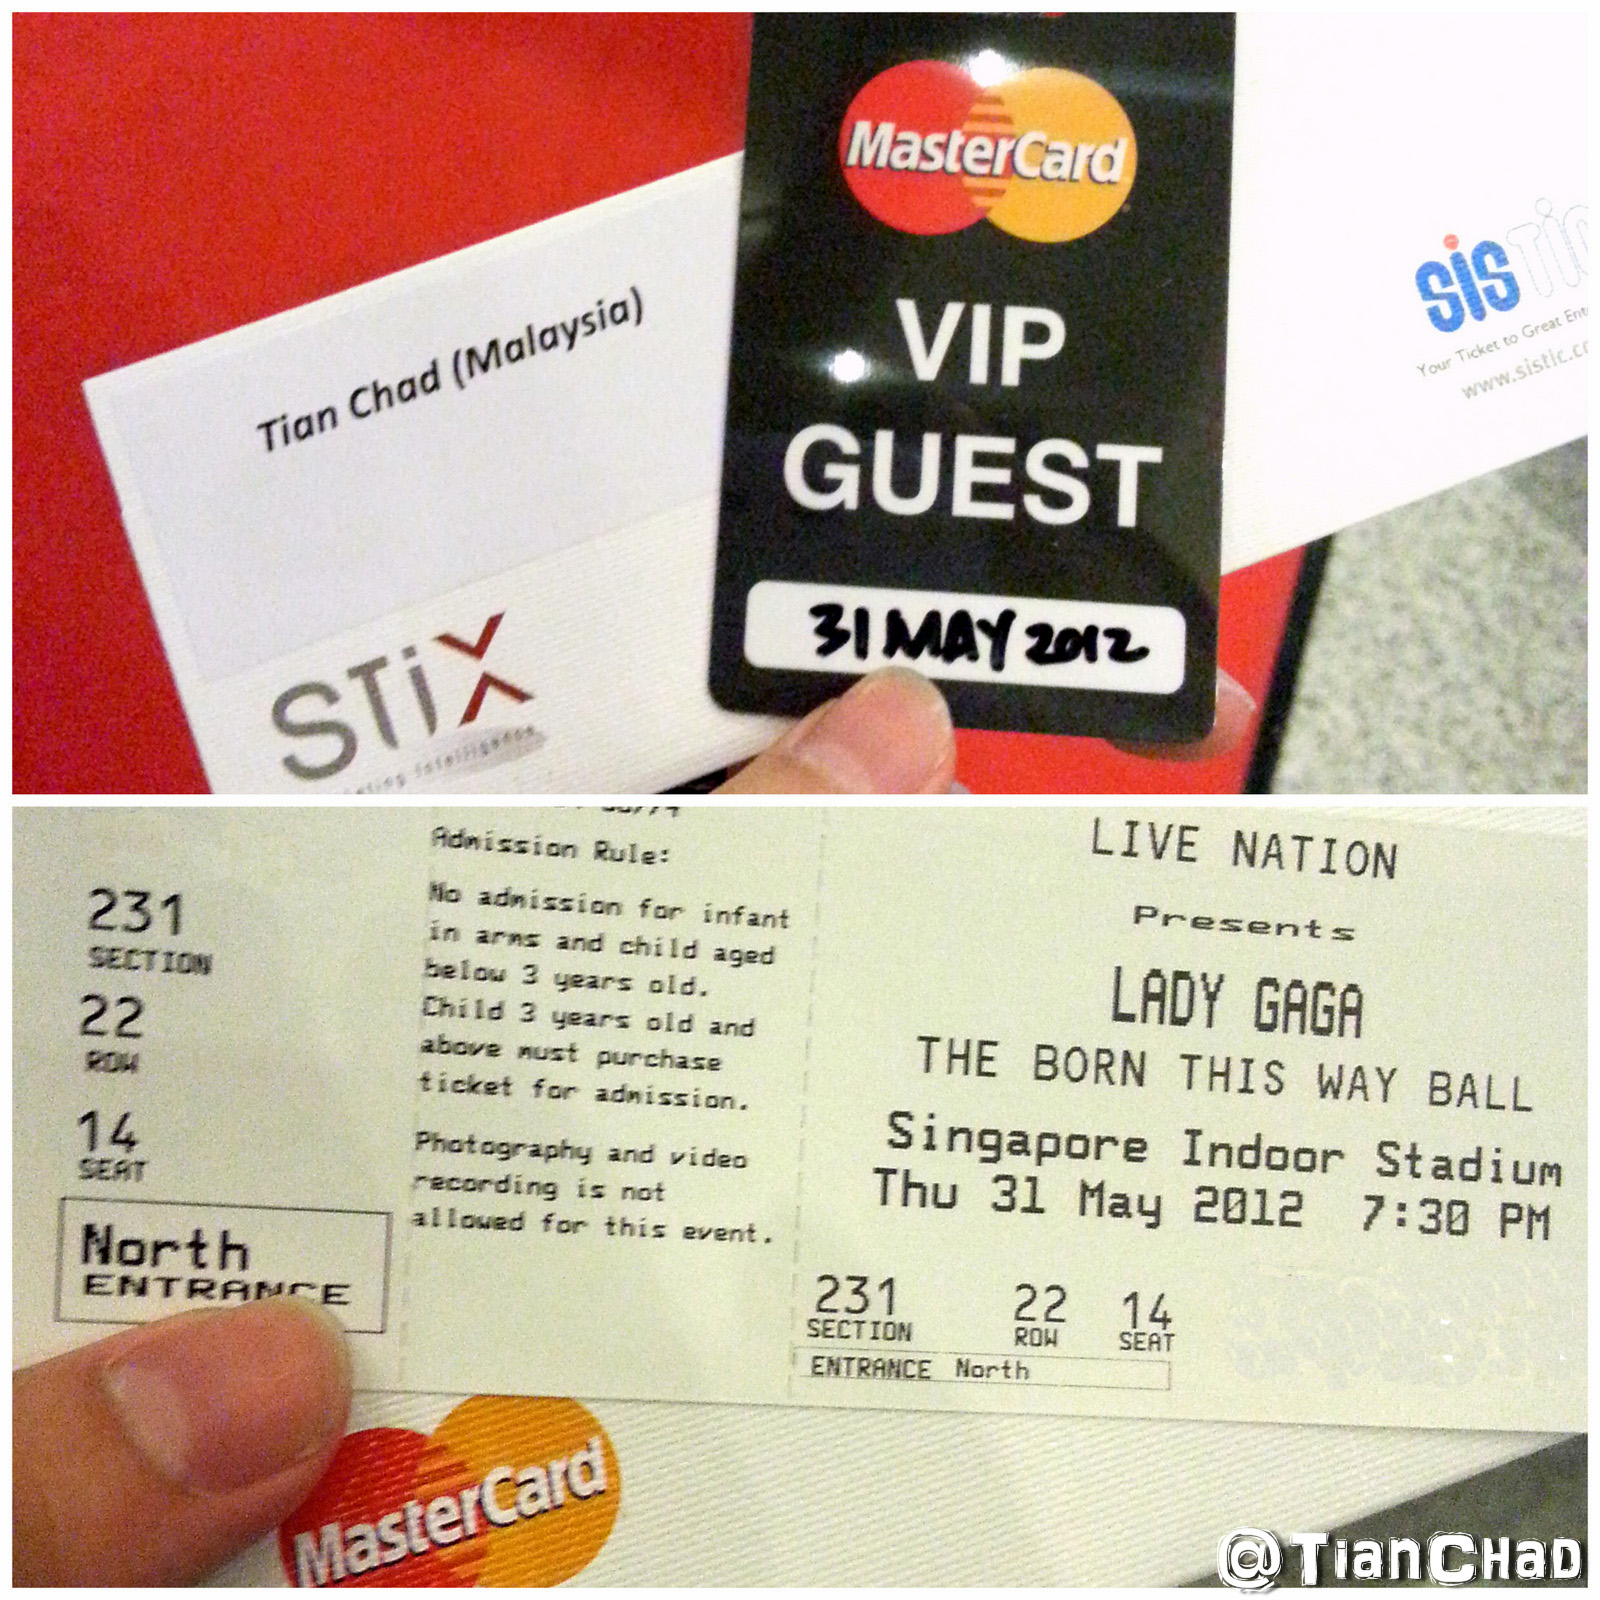 Priceless Mastercard Vip Trip To Singapore For Lady Gaga And Great